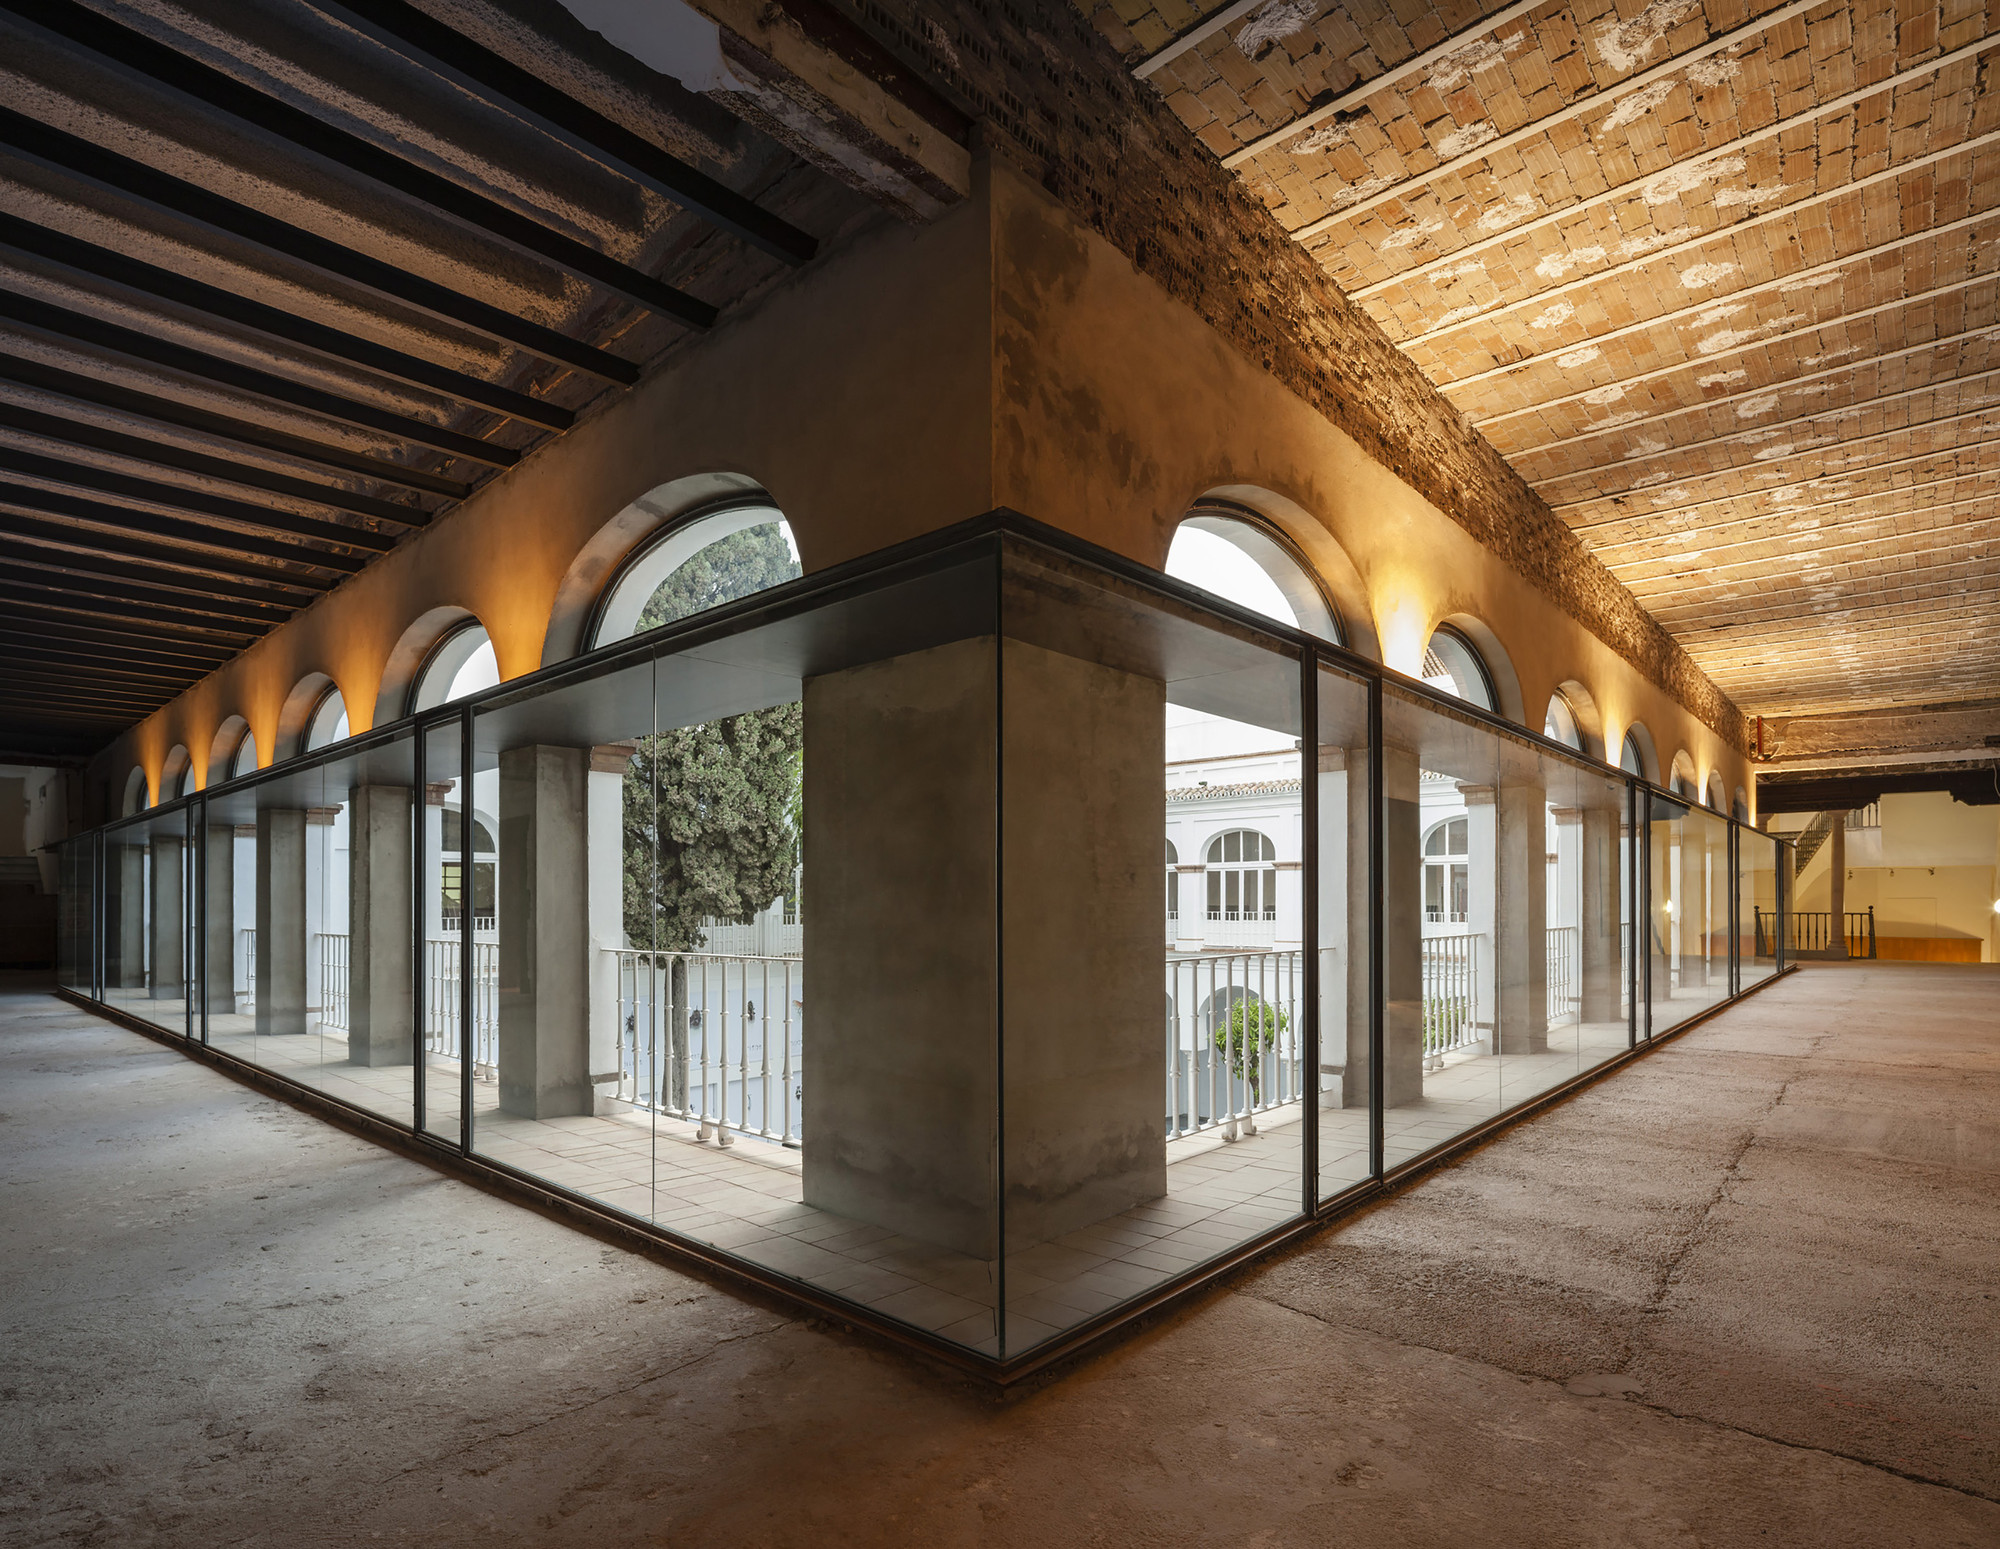 Gallery Of Contemporary Art Space In The Old Convent Of